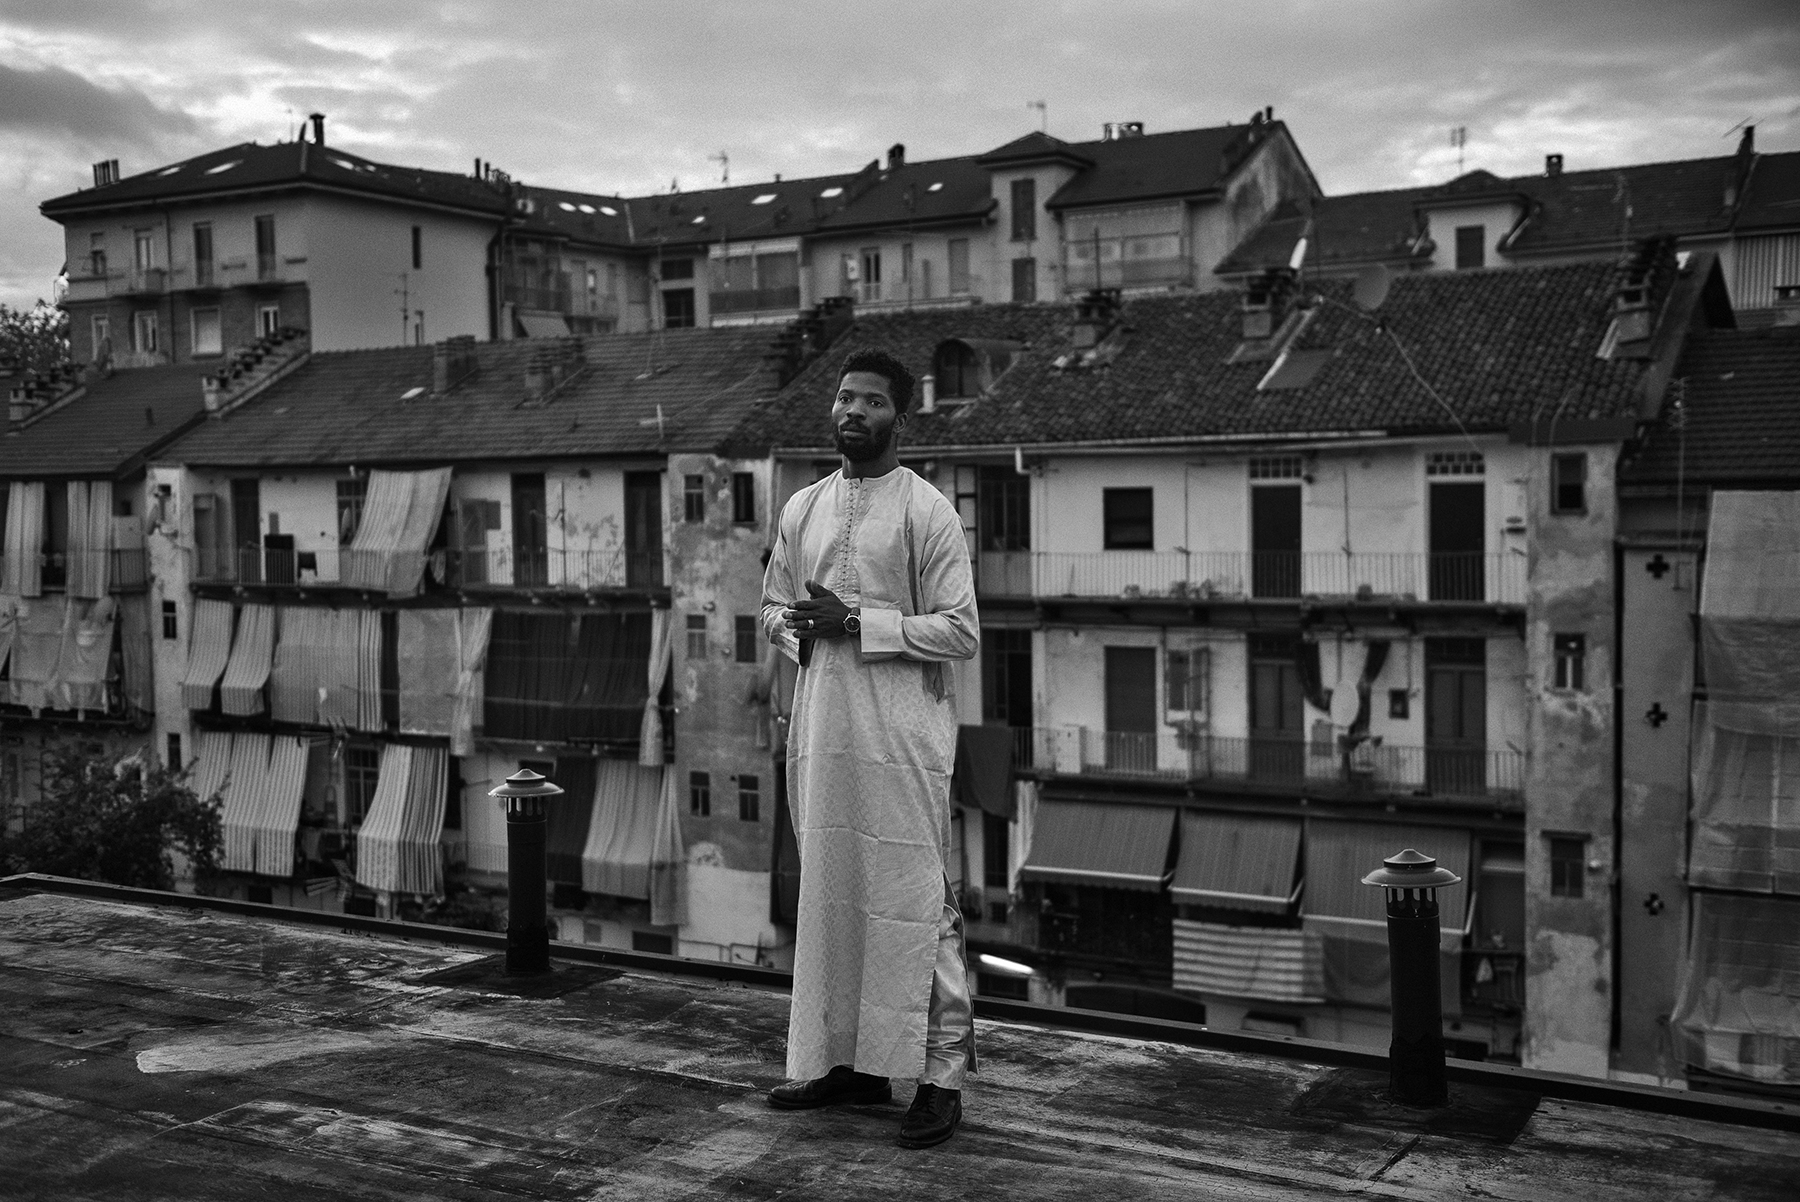 Jacob Bamba (30) portrayed in the rooftop of the Public Baths of Via Agliè in the working-class district of Barriera di Milano in Turin, Italy; November 2018.Mr. Bamba - who arrived in Turin when he was 18 - has lived for 2 years in a small apartment with 12 people; frequenting the public showers' social network had allowed Mr. Bamba to free himself of a degrading condition. He now works as cultural mediator and is well-known in the troubled neighbourhood as a social rapper, advocating for migrants' integration and better life conditions.